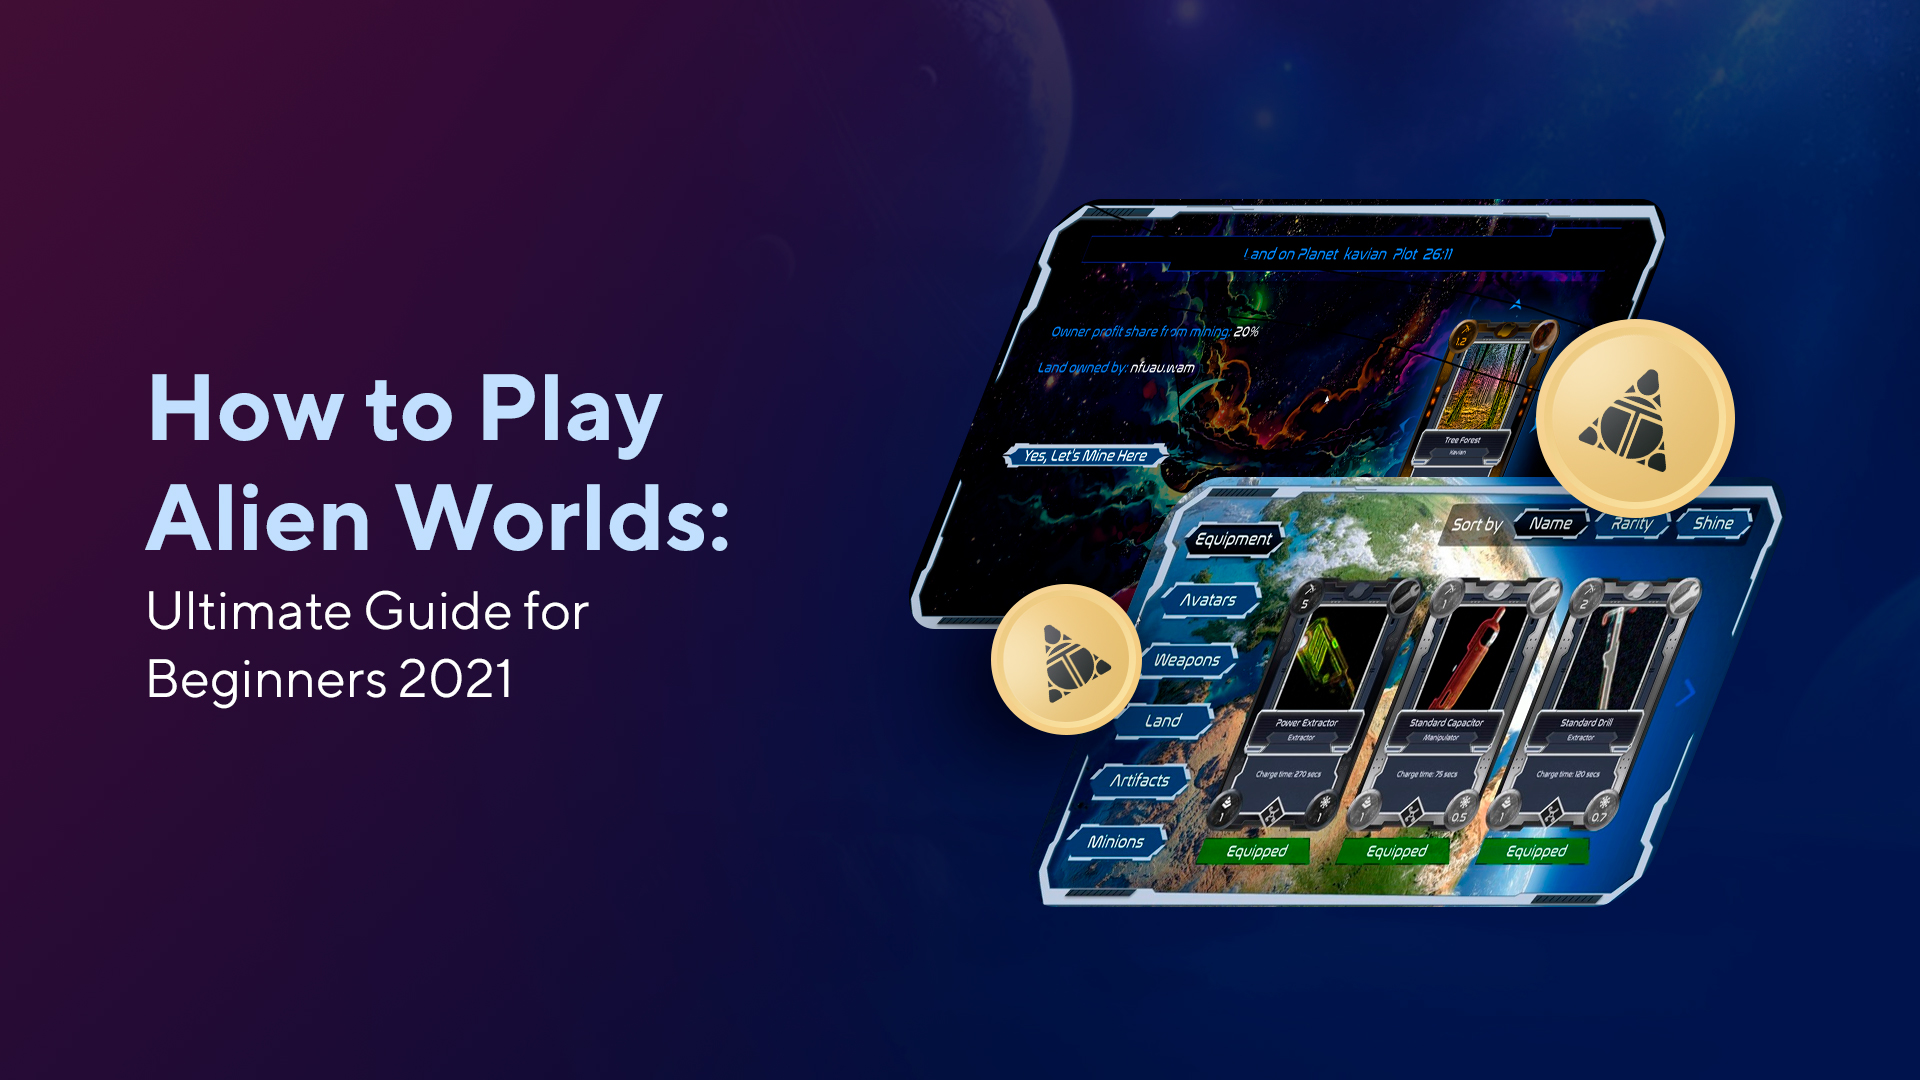 How to Play Alien Worlds: Ultimate Guide for Beginners 2021